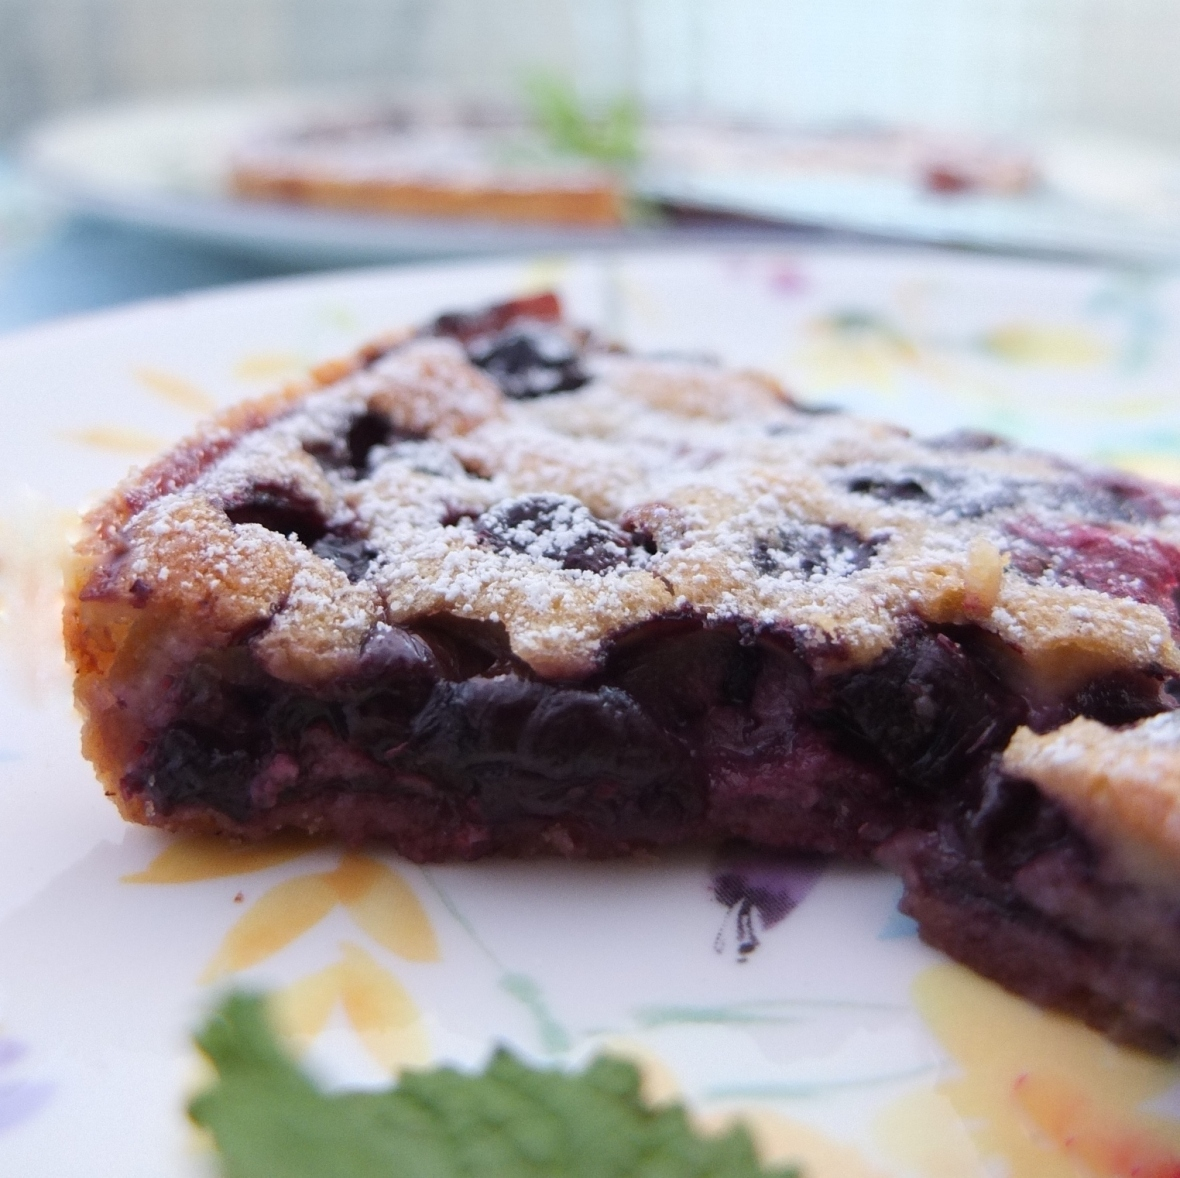 Blueberry and pine nut tart